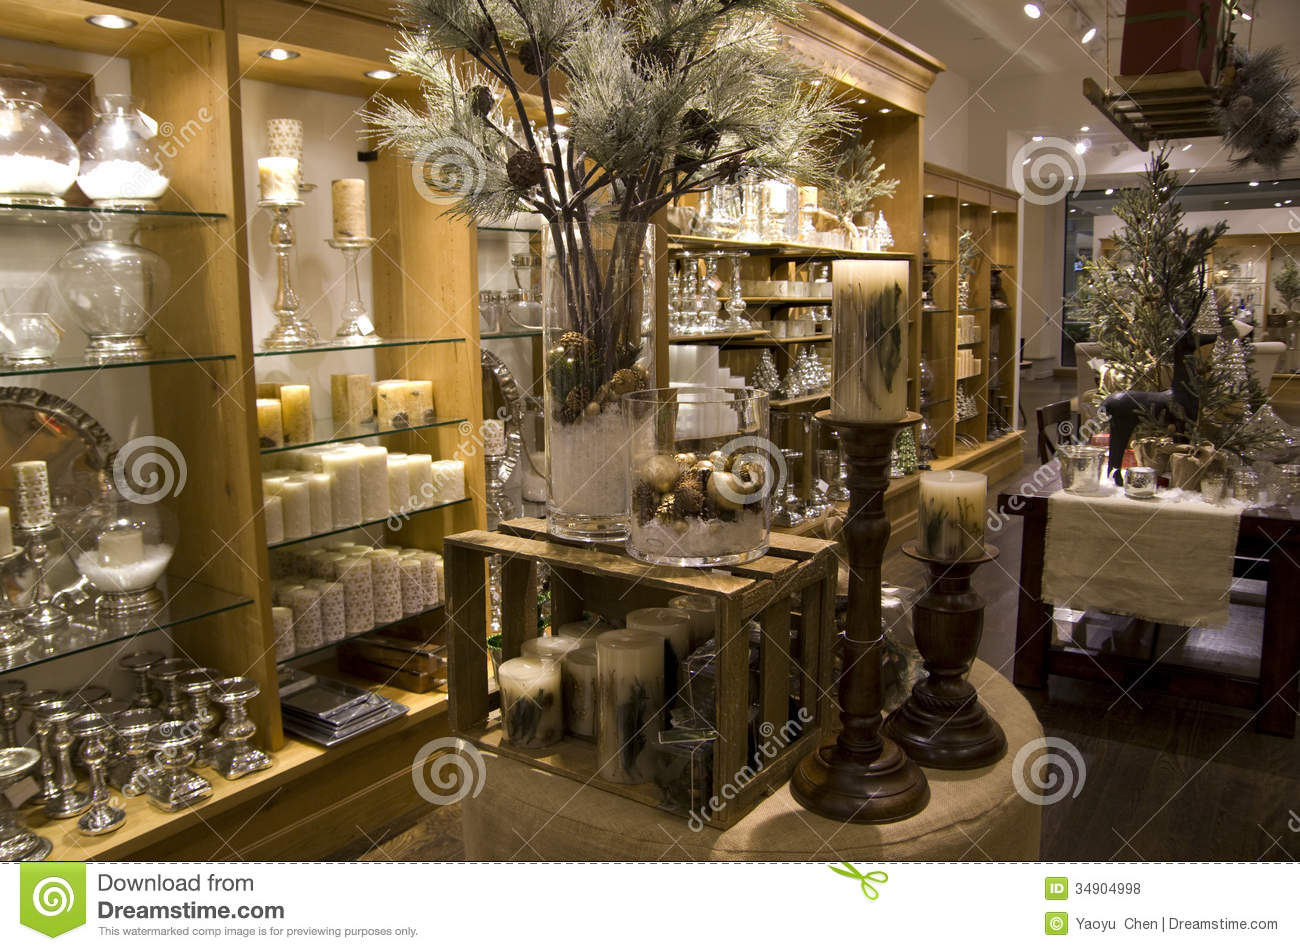 Home decor store stock photo image of lighting shelves for House accessories stores